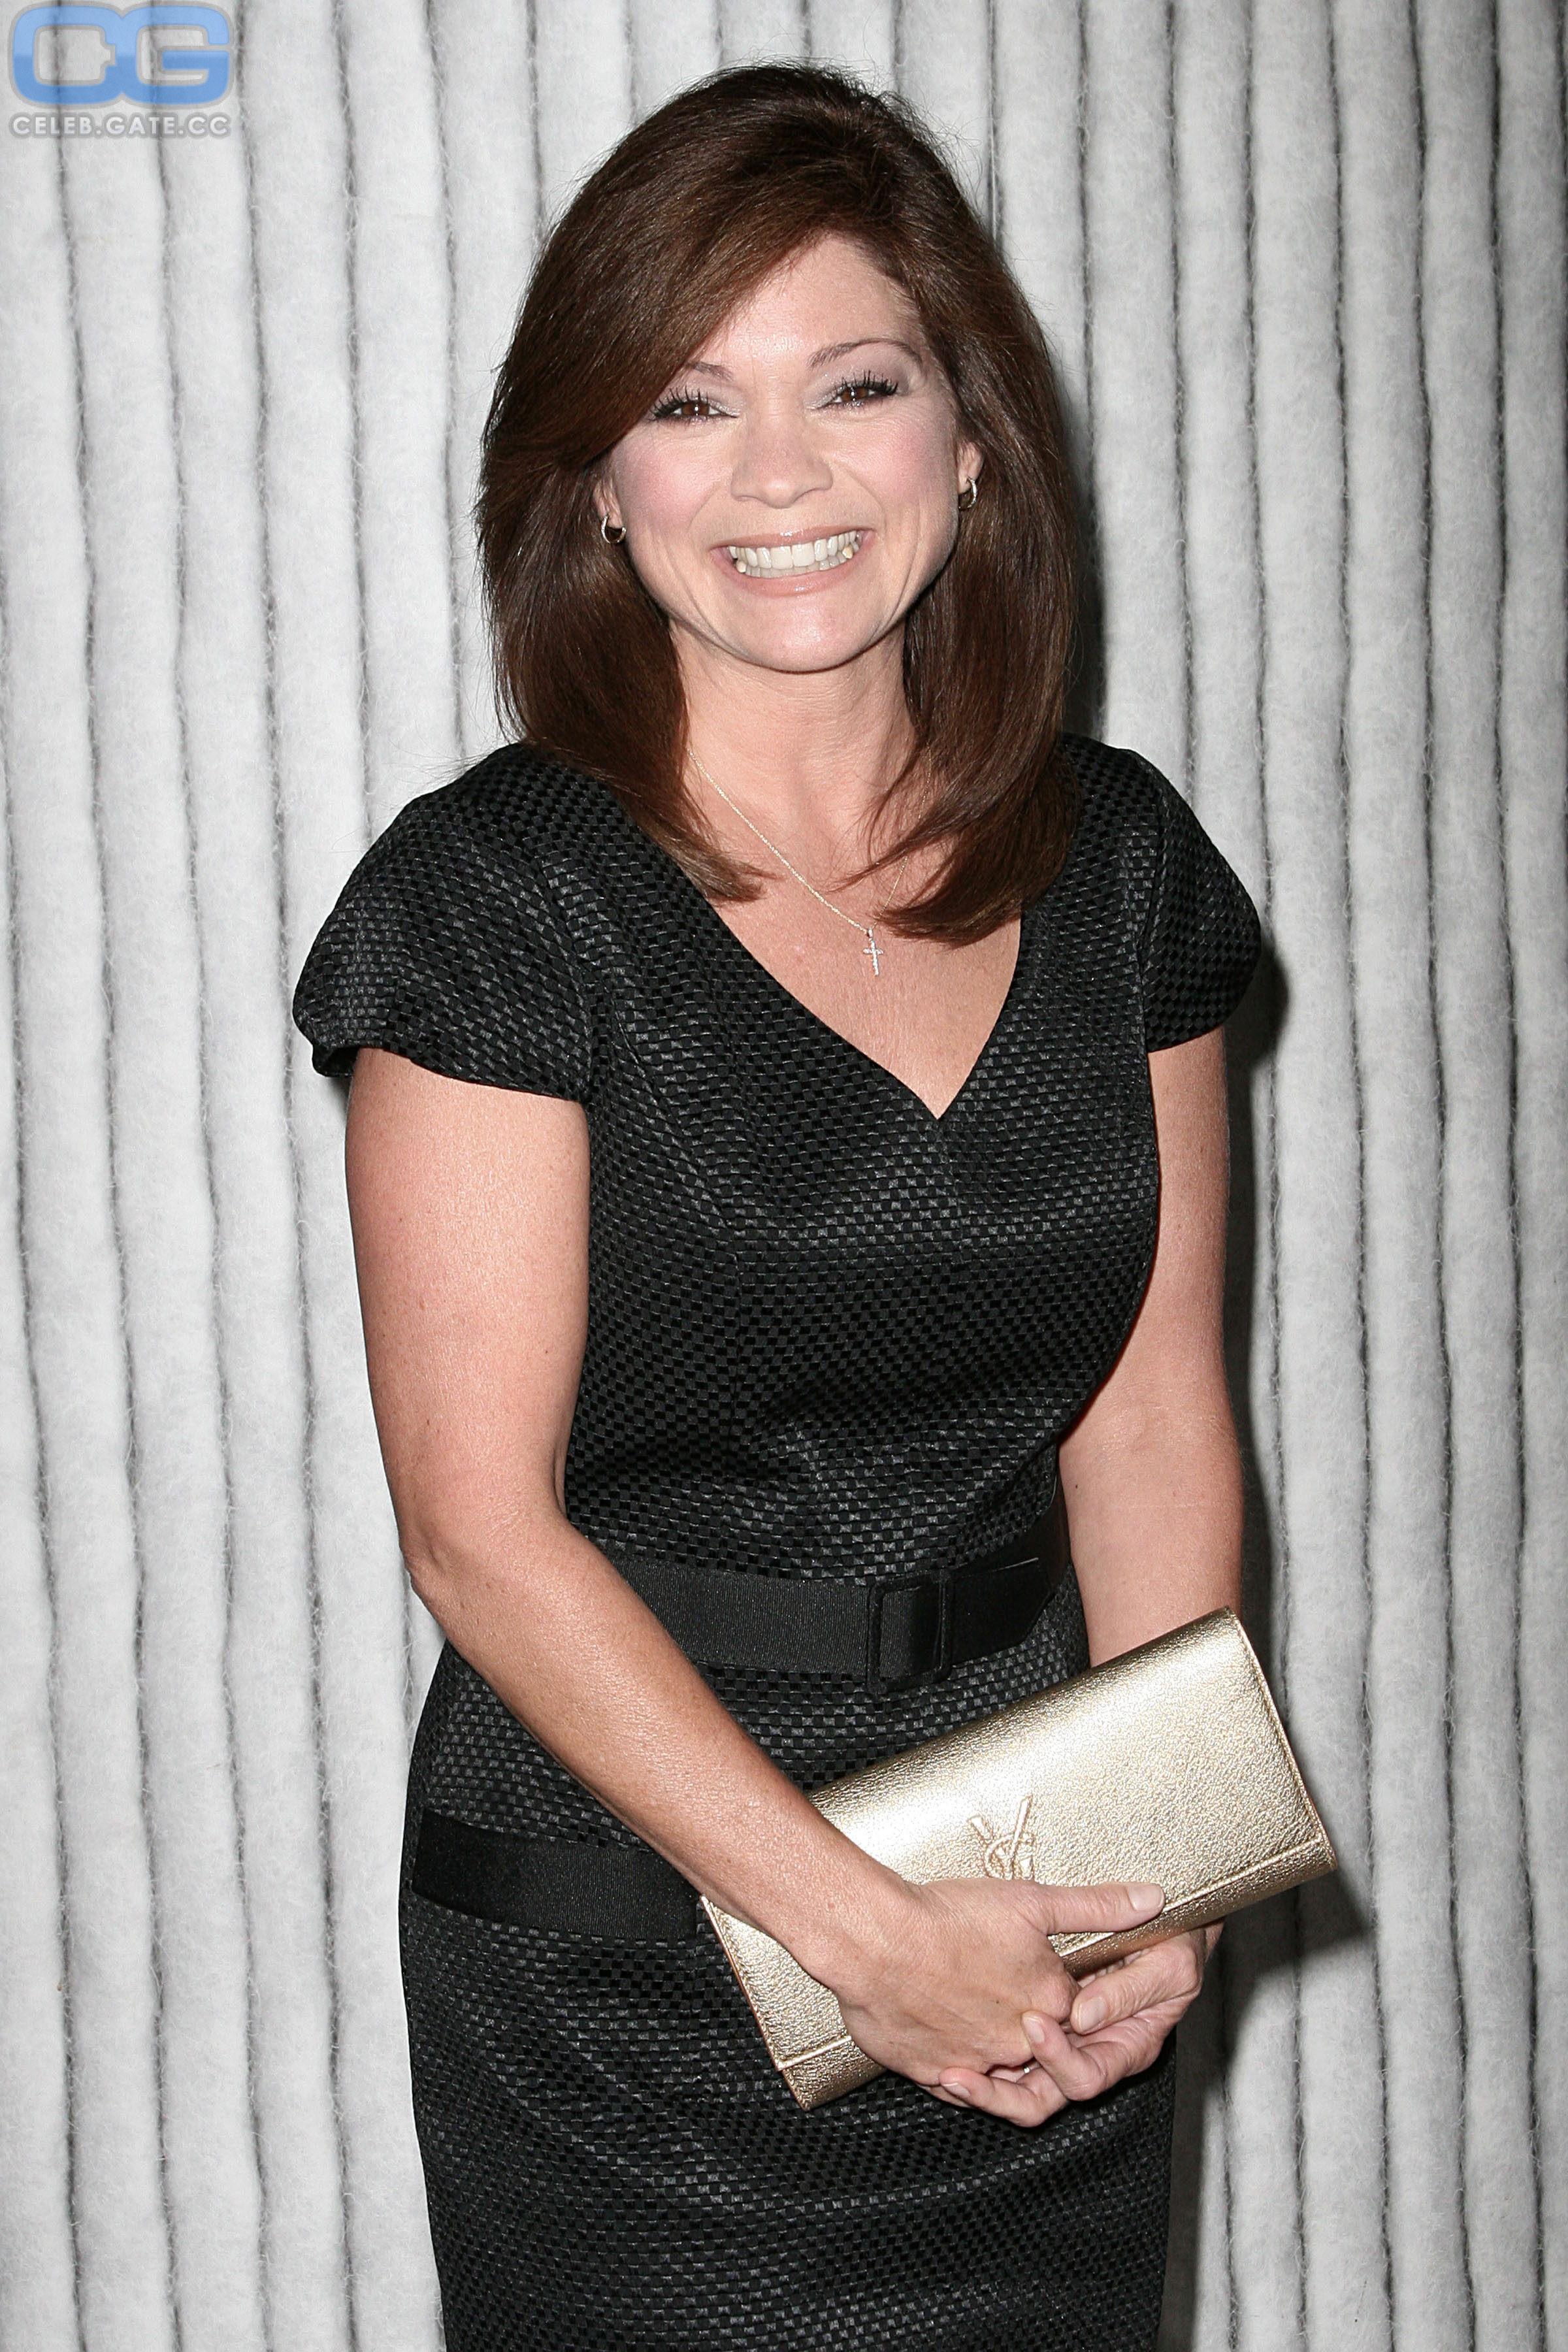 Valerie bertinelli so sexy — photo 13